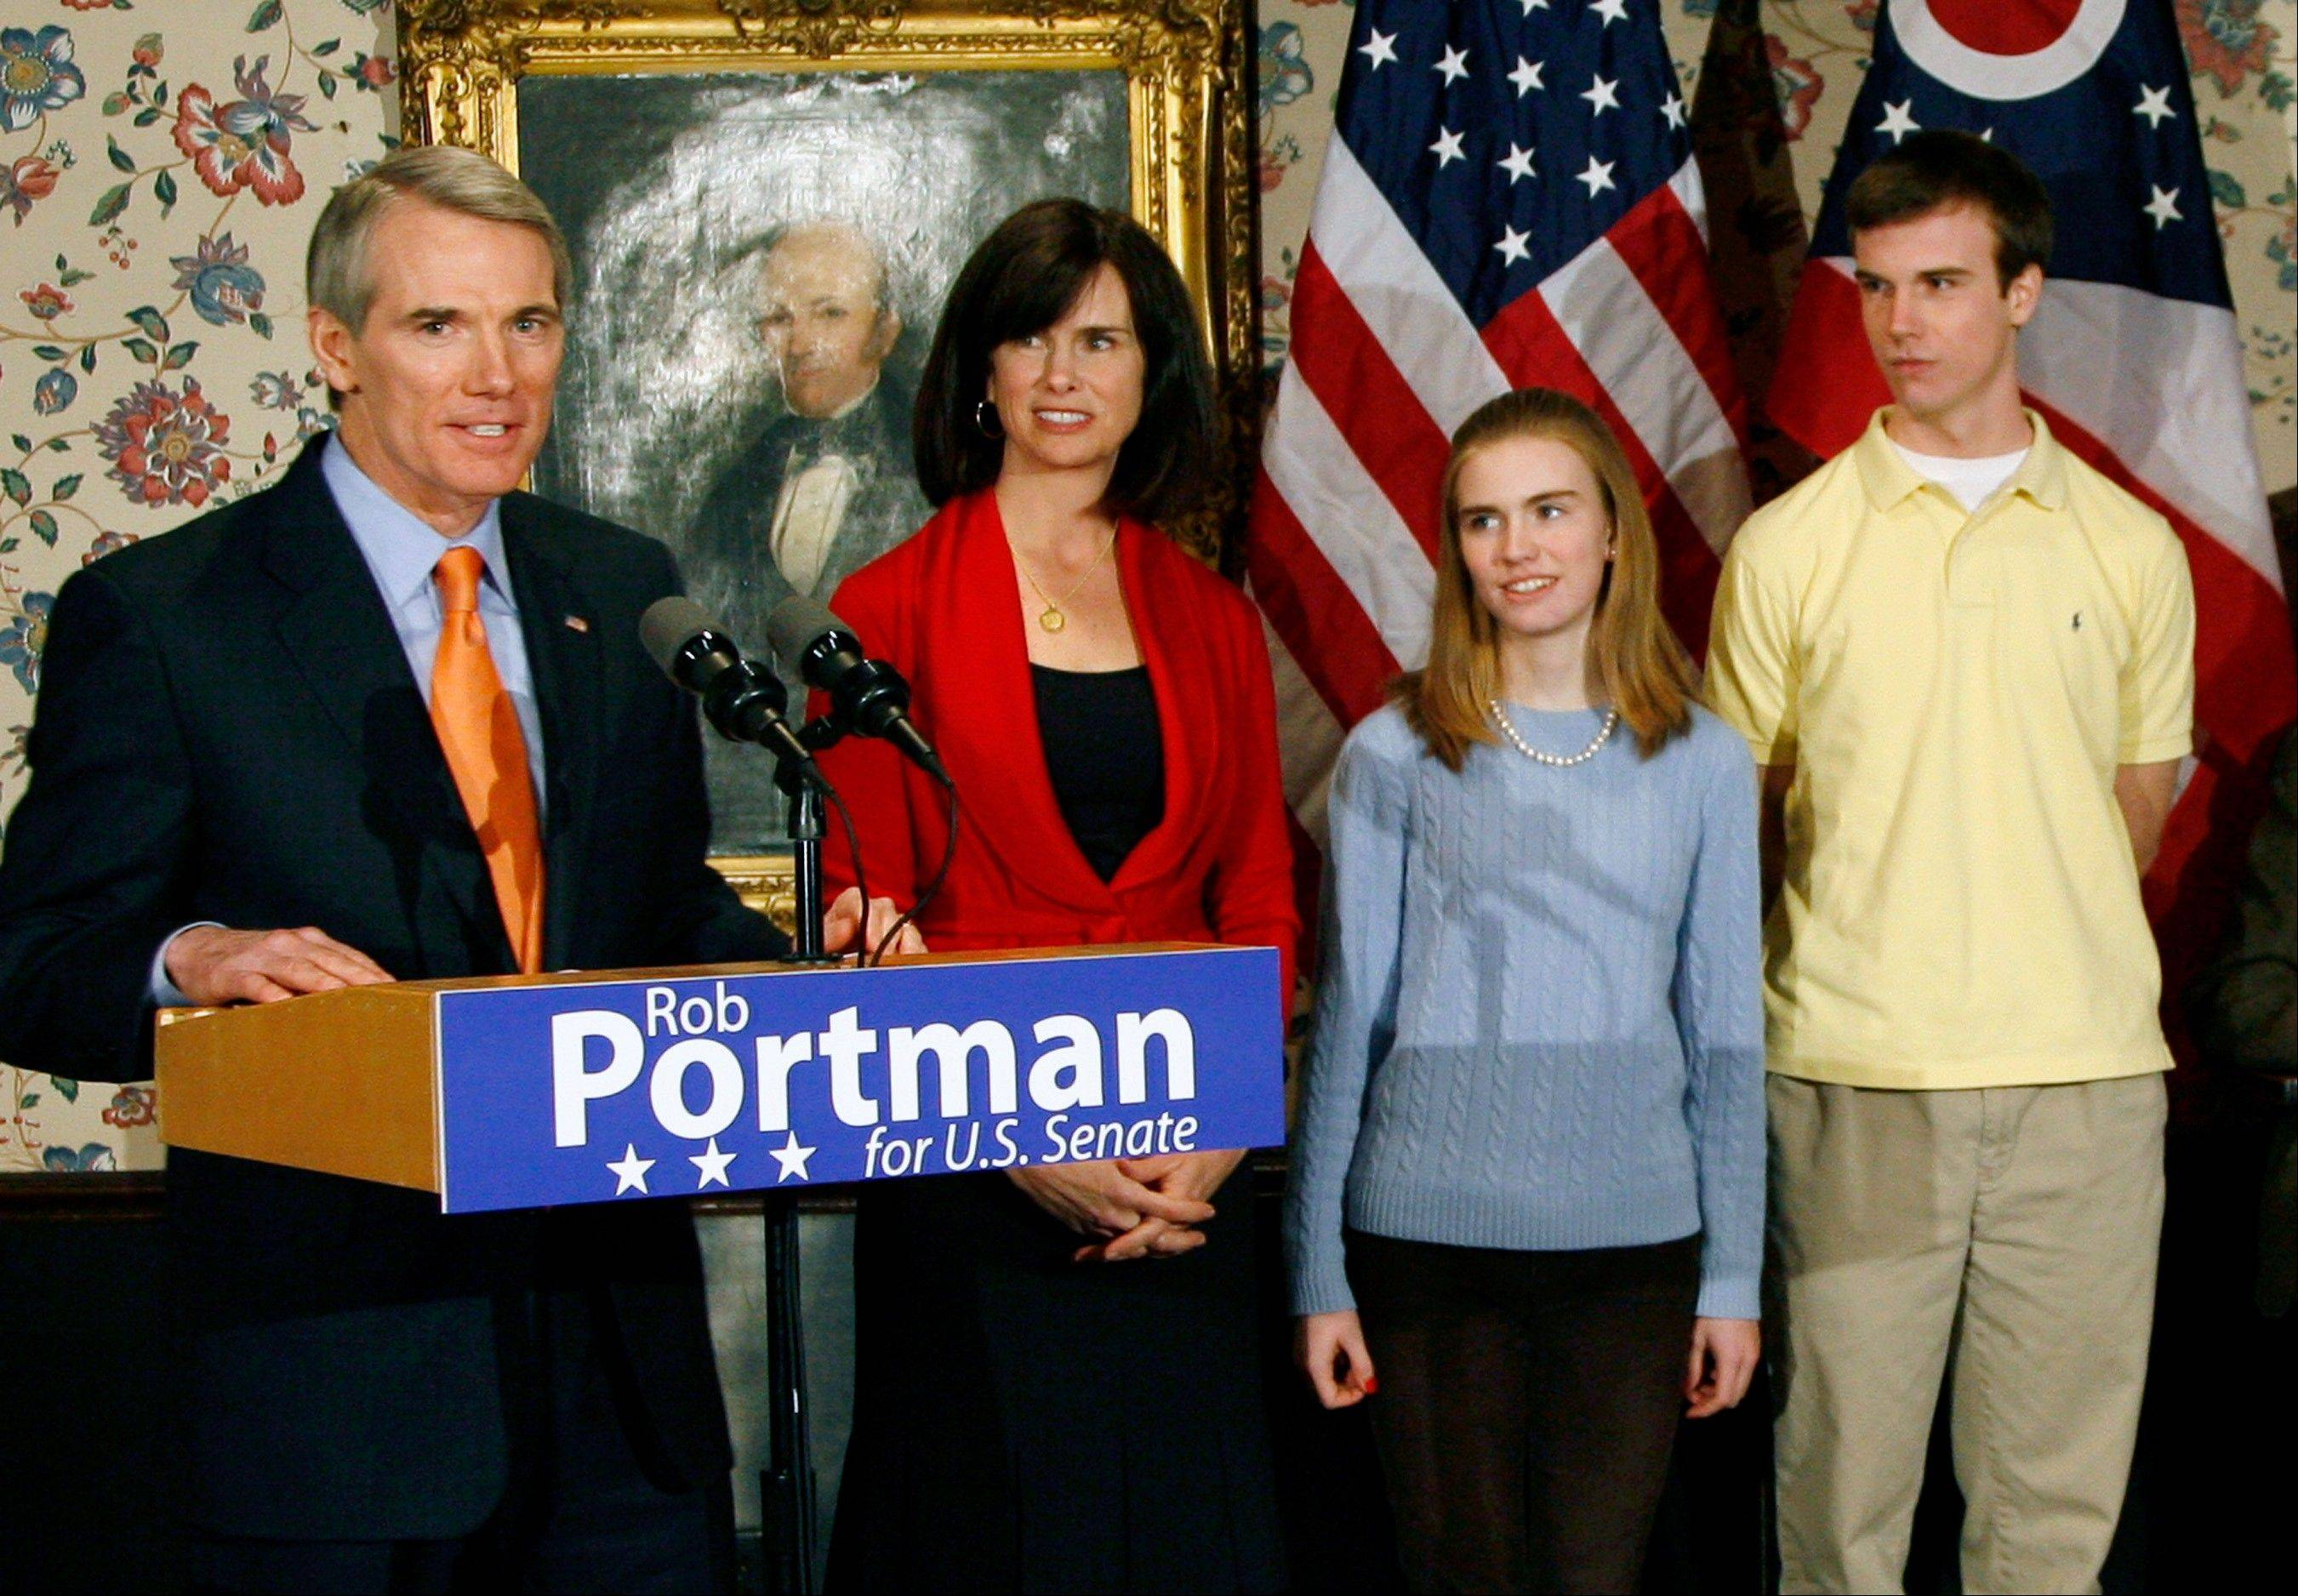 U.S. Sen. Rob Portman, from left, with his wife, Jane, daughter Sally, and son